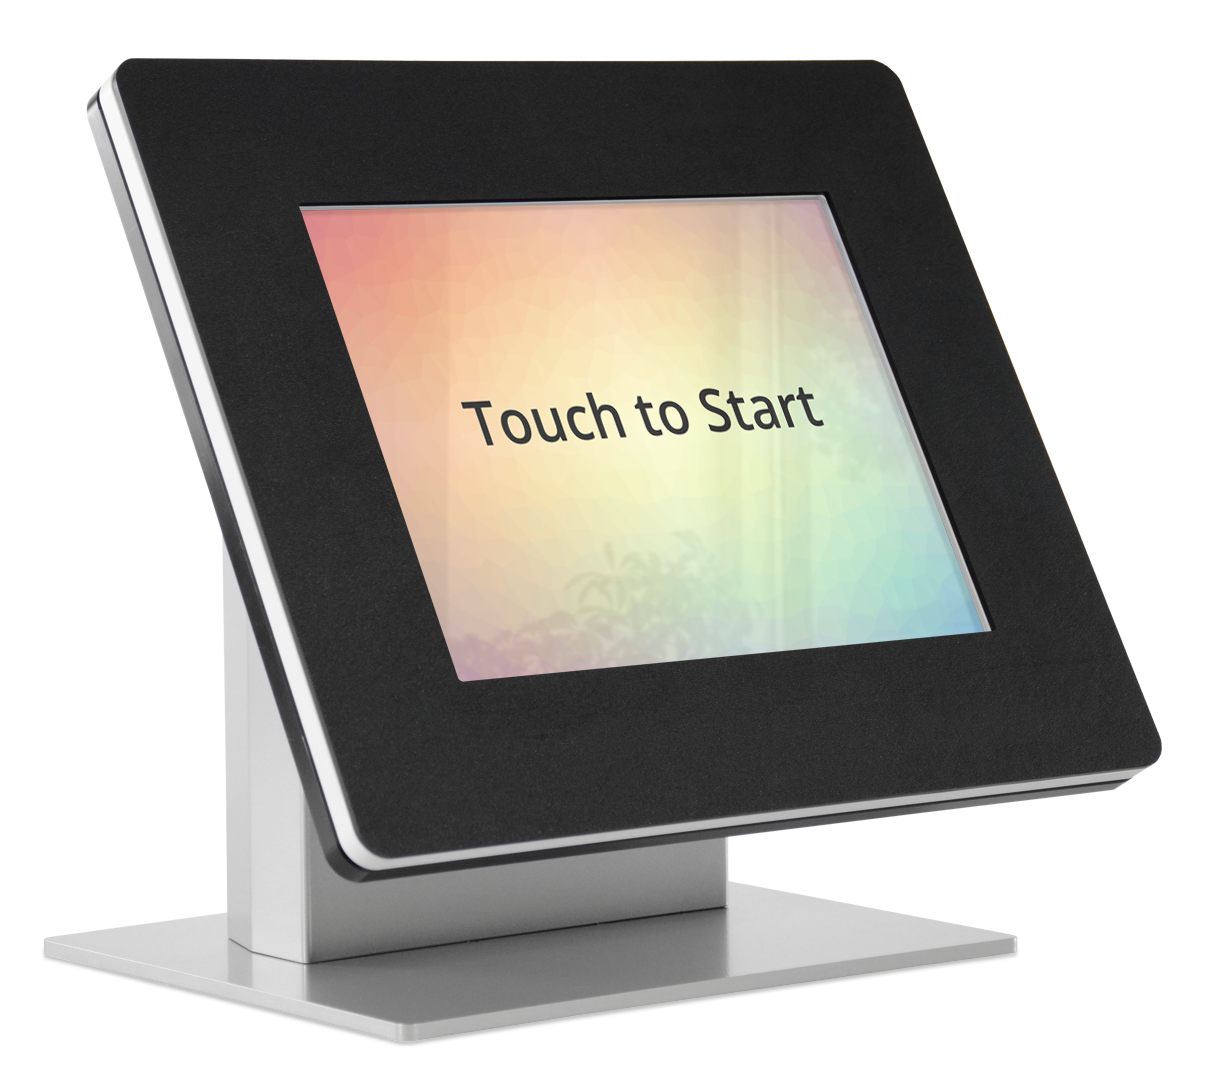 Use a kiosk to capture contact information.